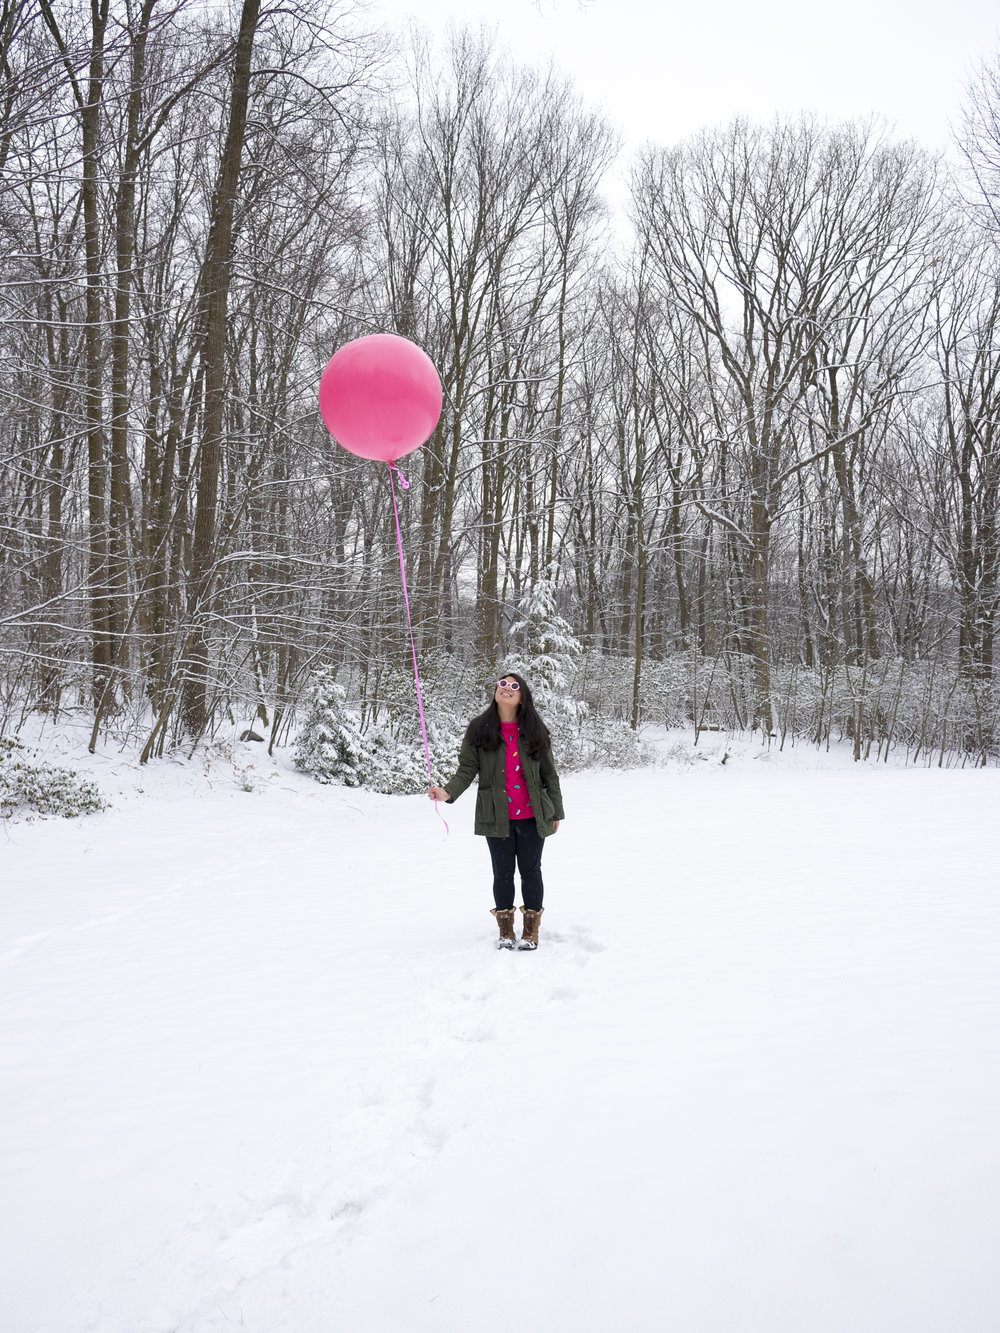 amy_chen_design_pink_balloon_snow_winter_nj.jpg